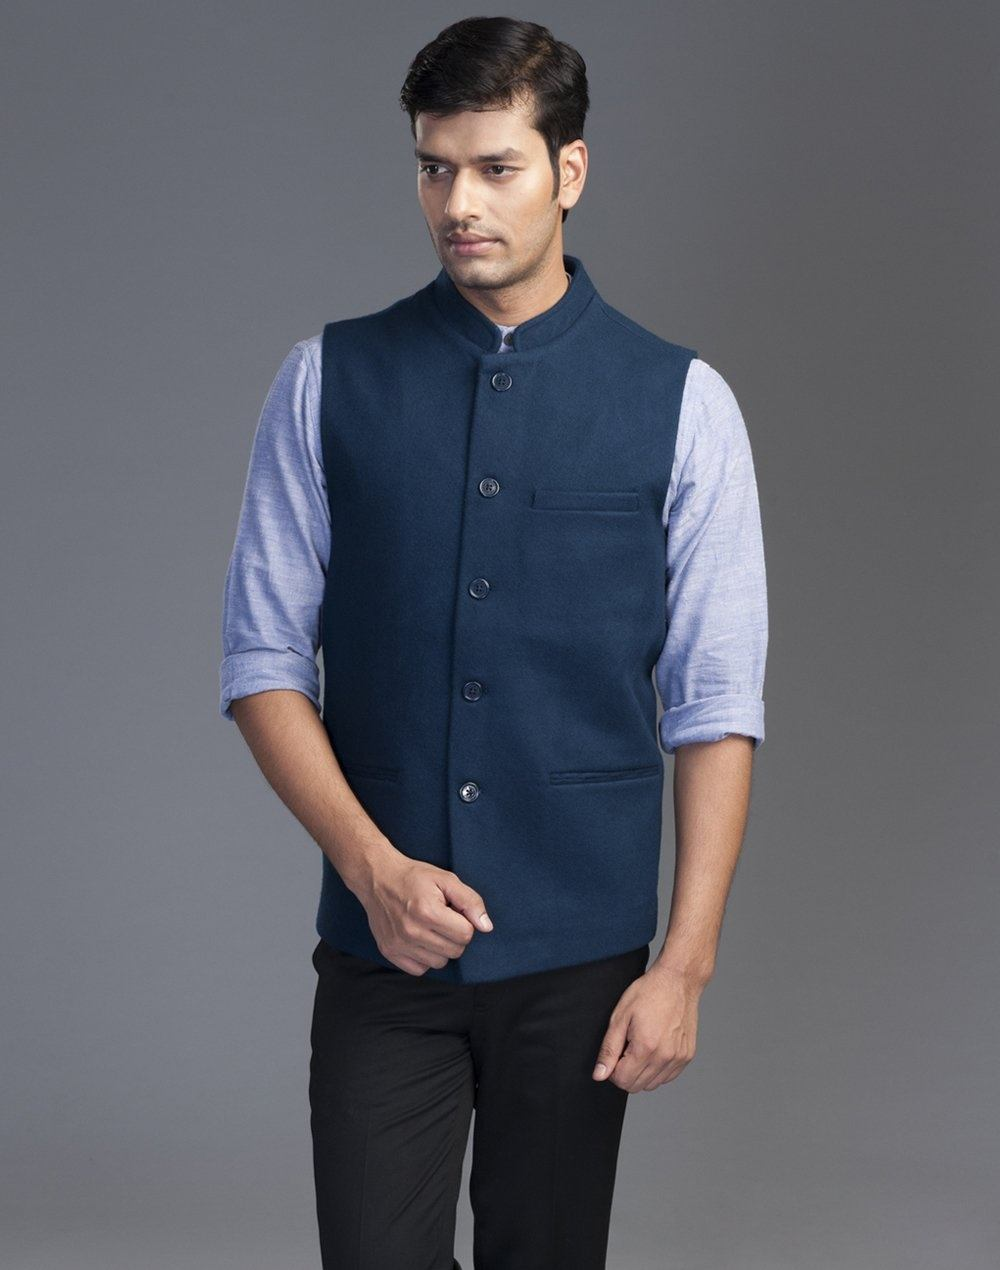 Which Color Shirt Is Better Under Blue Nehru Jacket Quora